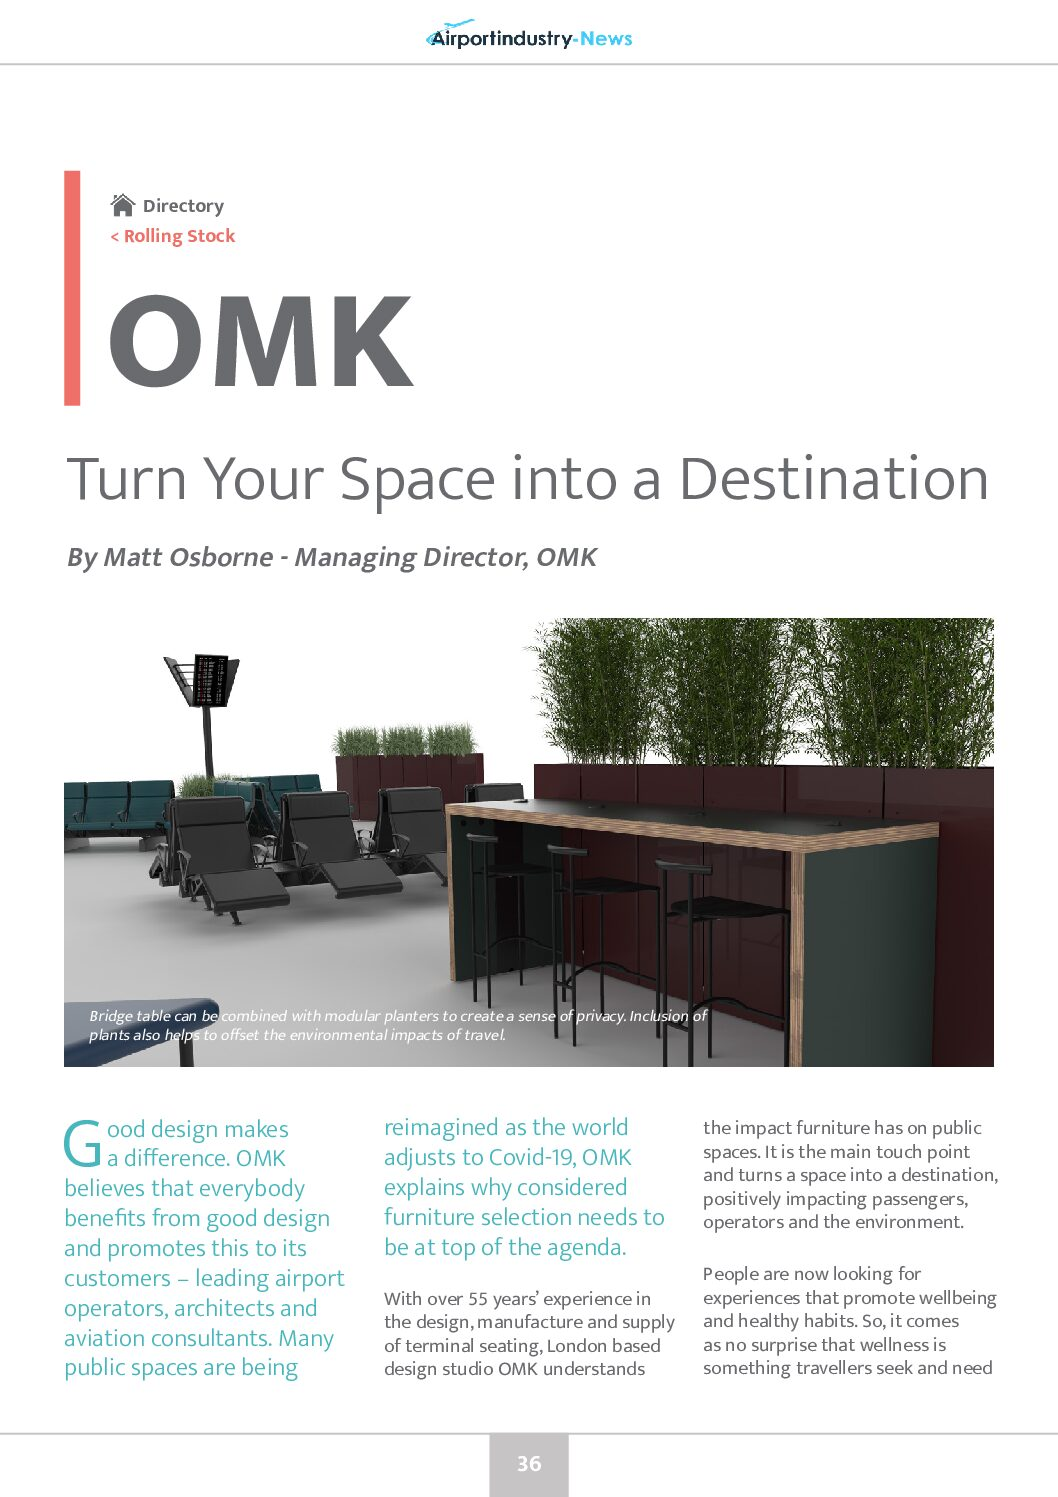 Turn Your Space into a Destination with OMK